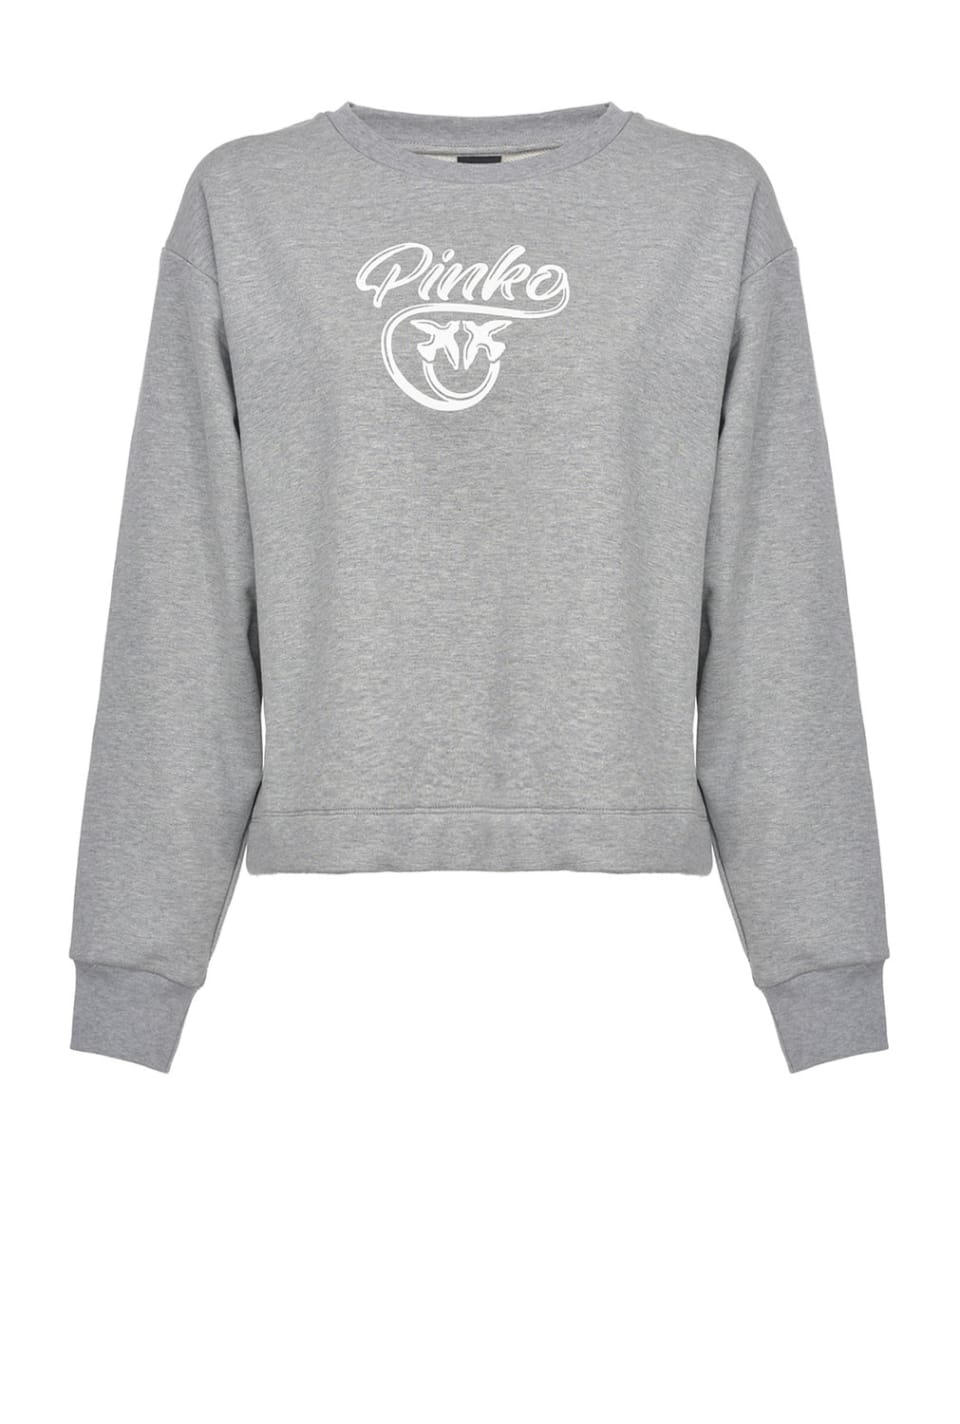 Sweat-shirt logo Love Birds - Pinko